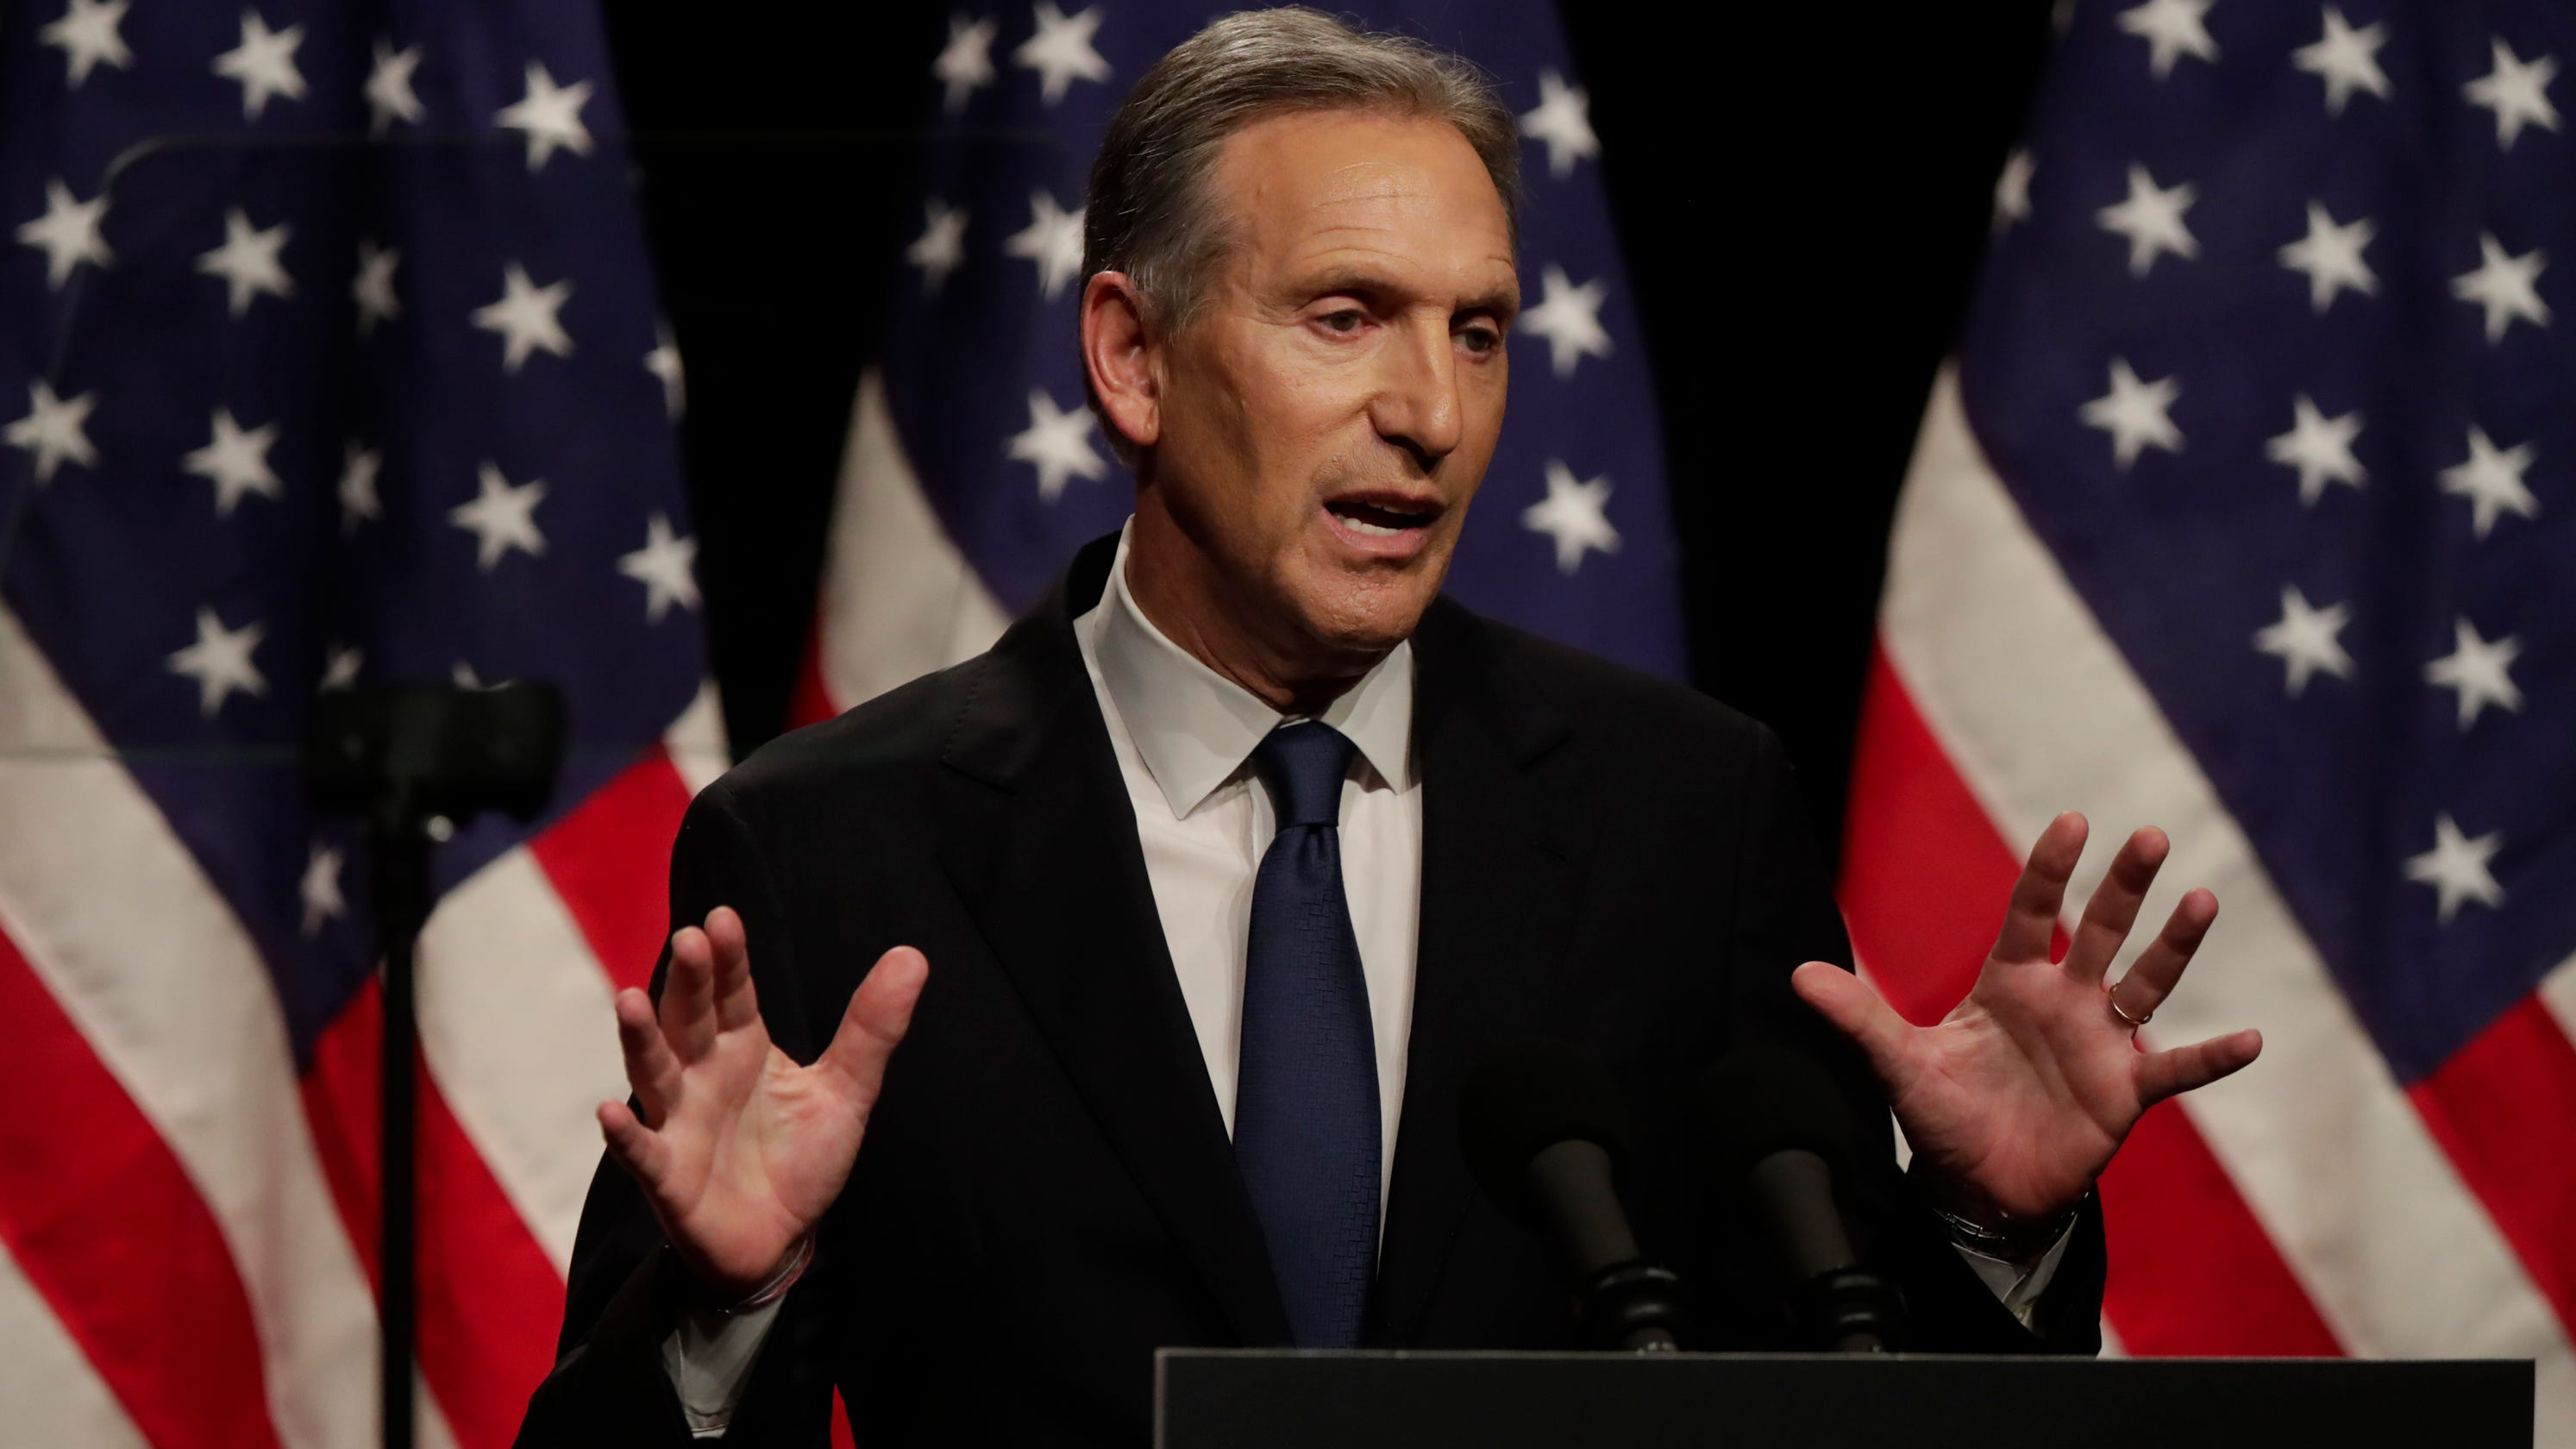 Howard Schultz Ethnicity, Race, and Nationality